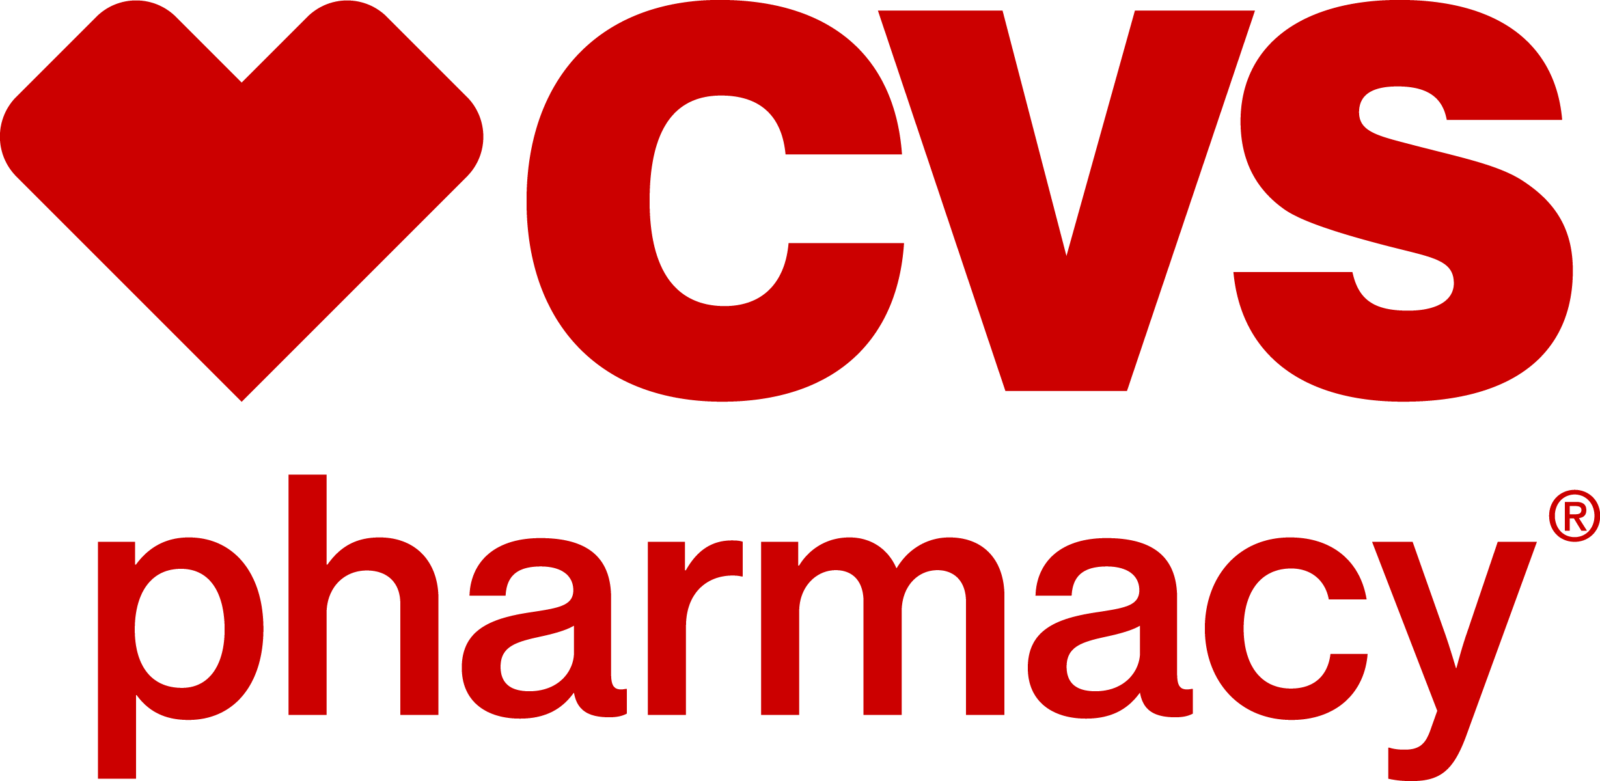 https://powerwashed.com/wp-content/uploads/2019/04/cvs-pharmacy-logo.png